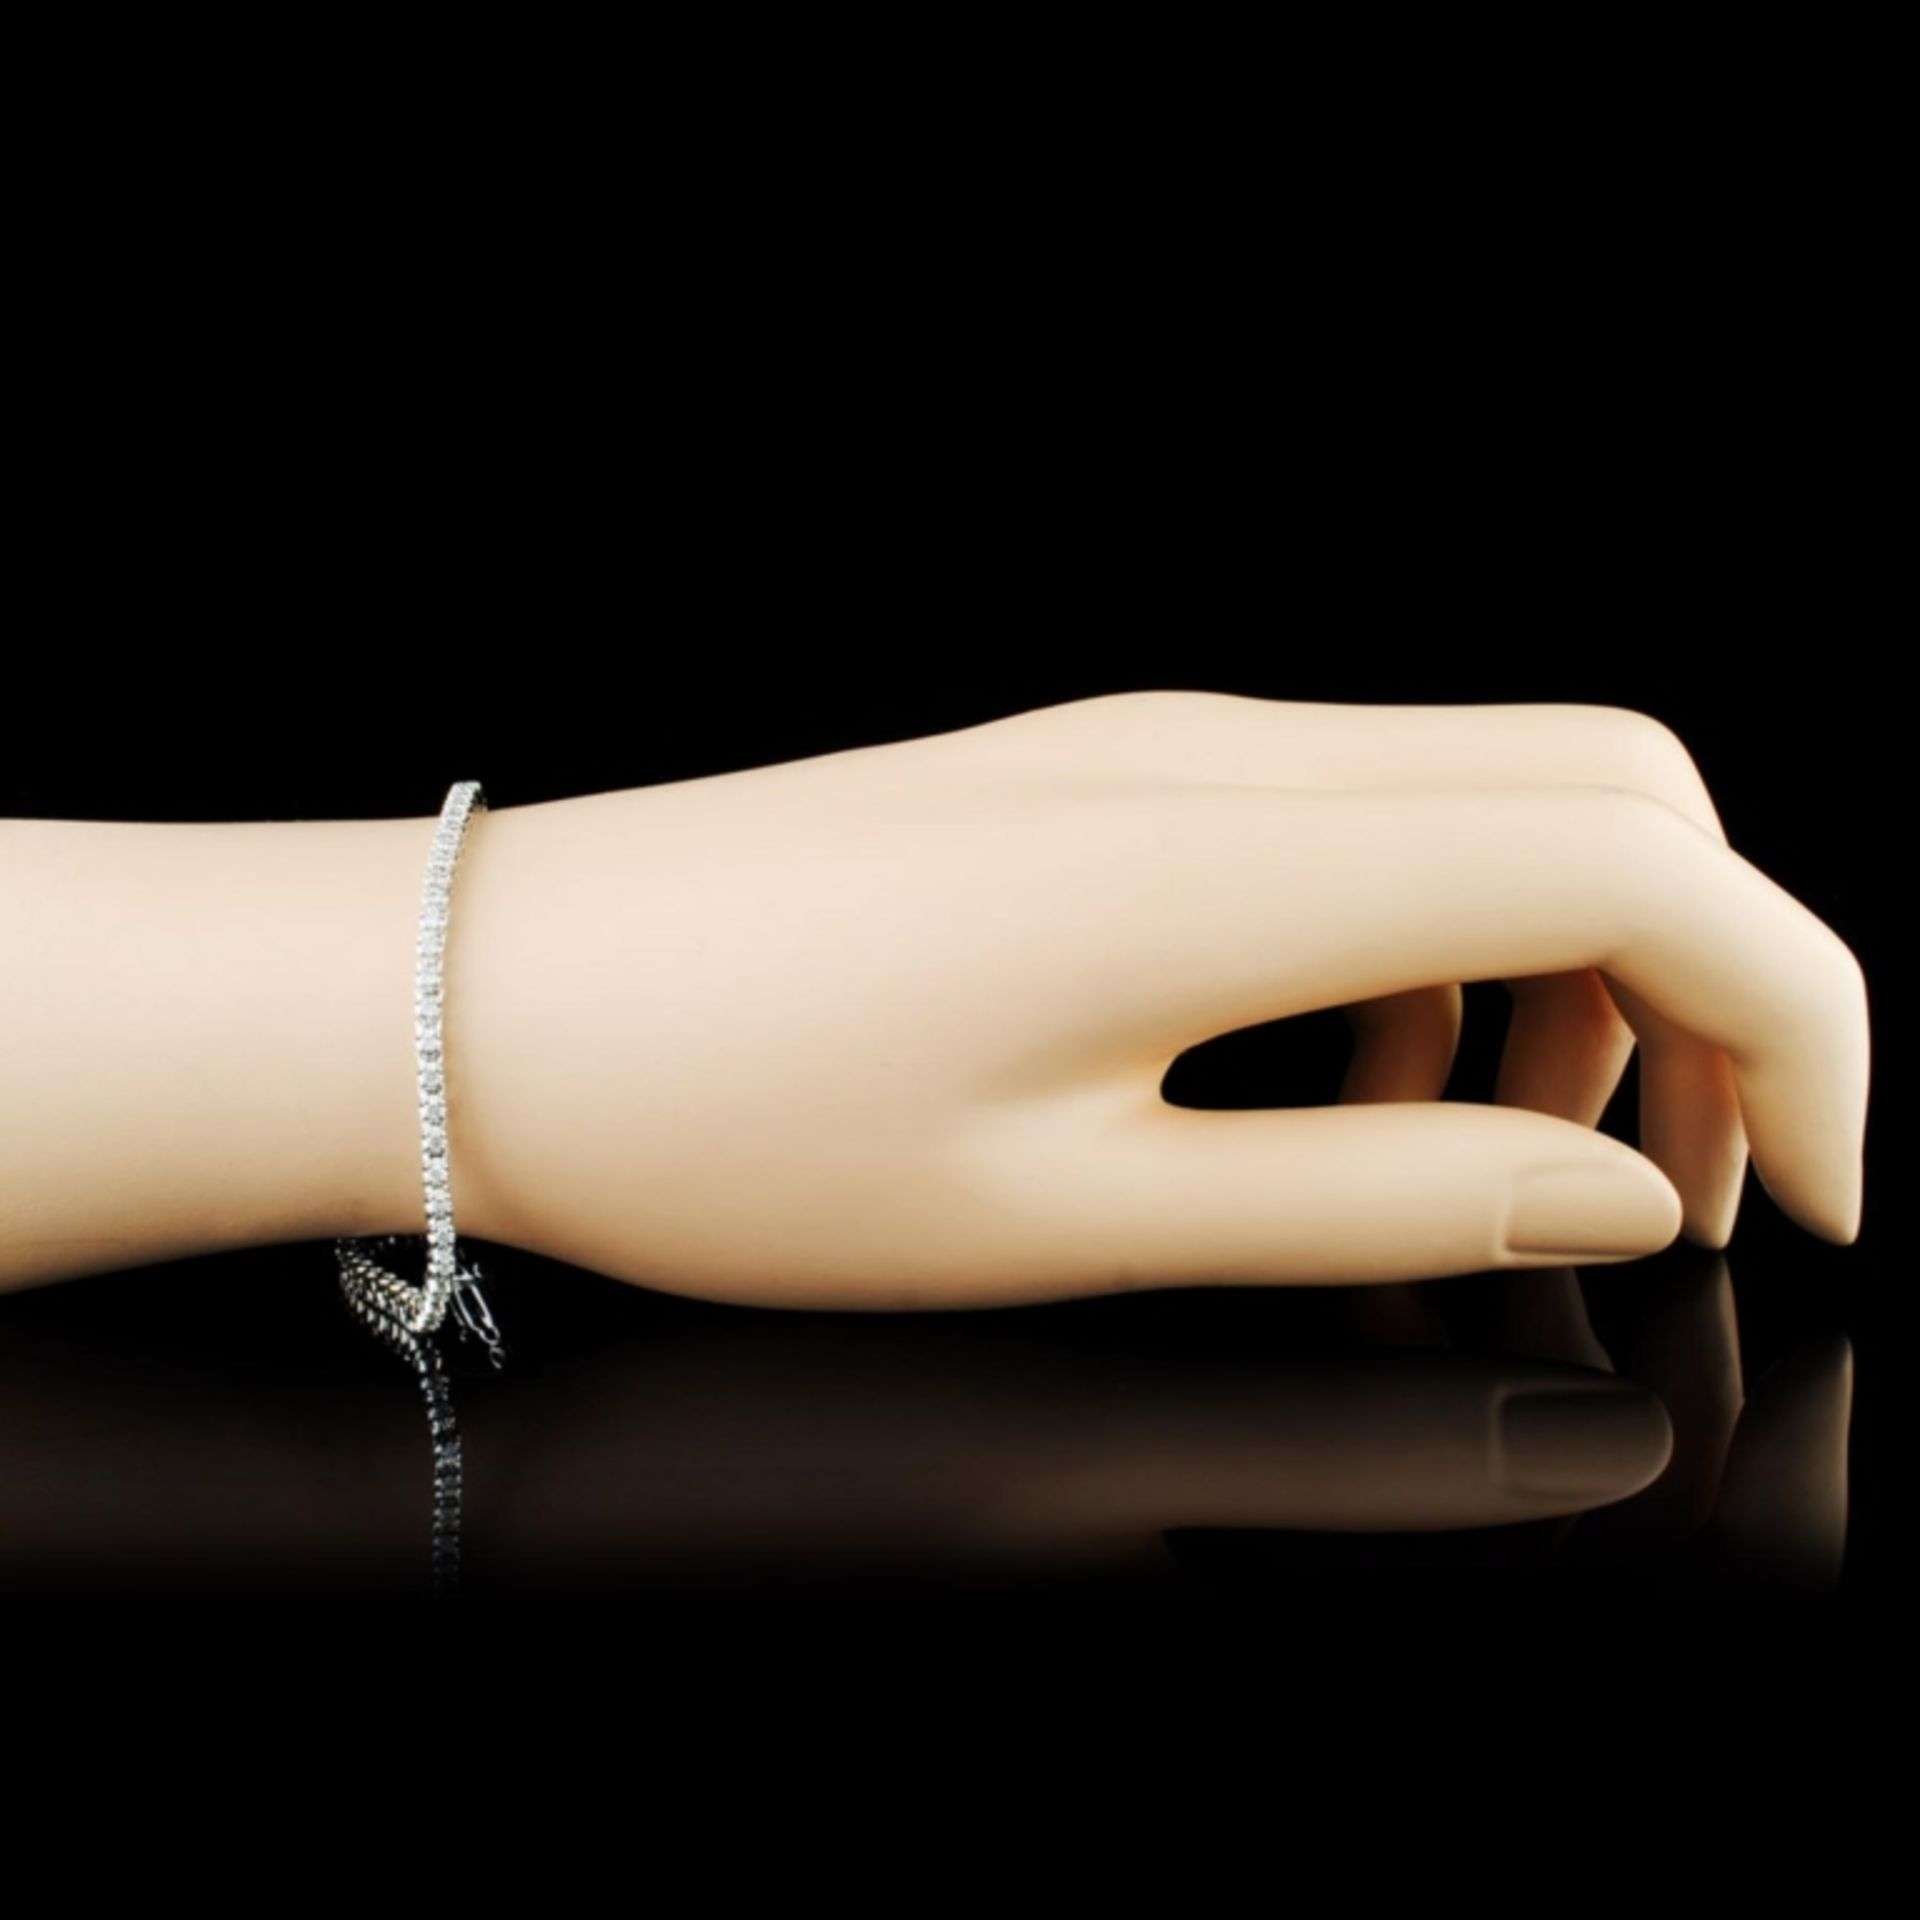 14K Gold 0.44ctw Diamond Bracelet - Image 3 of 4